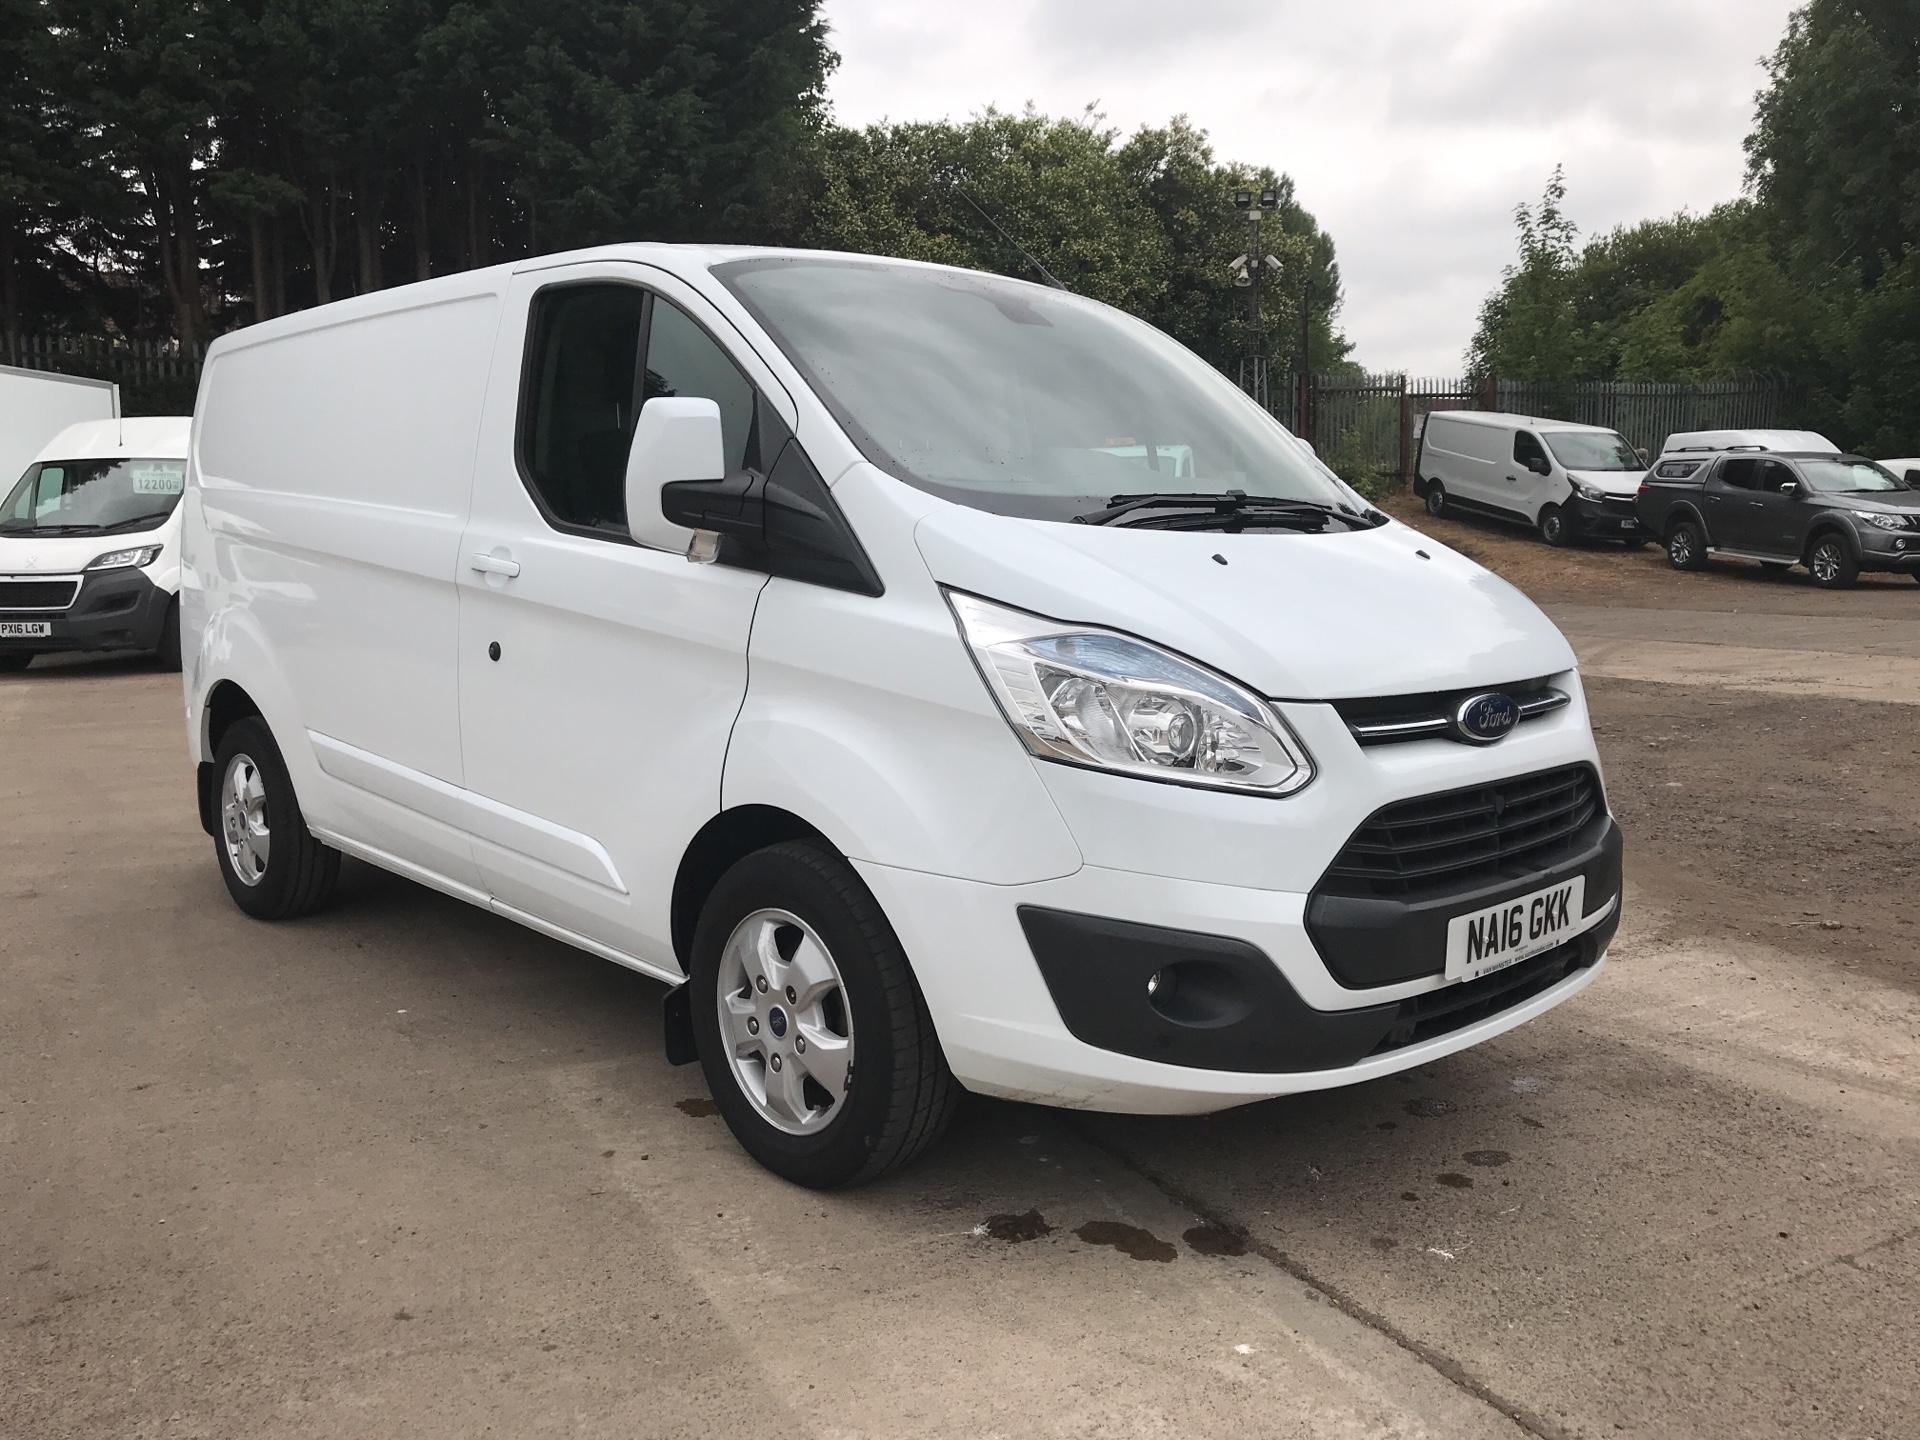 2016 Ford Transit Custom 270 L1 DIESEL FWD 2.2  TDCI 125PS LOW ROOF LIMITED VAN EURO 5 (NA16GKK)